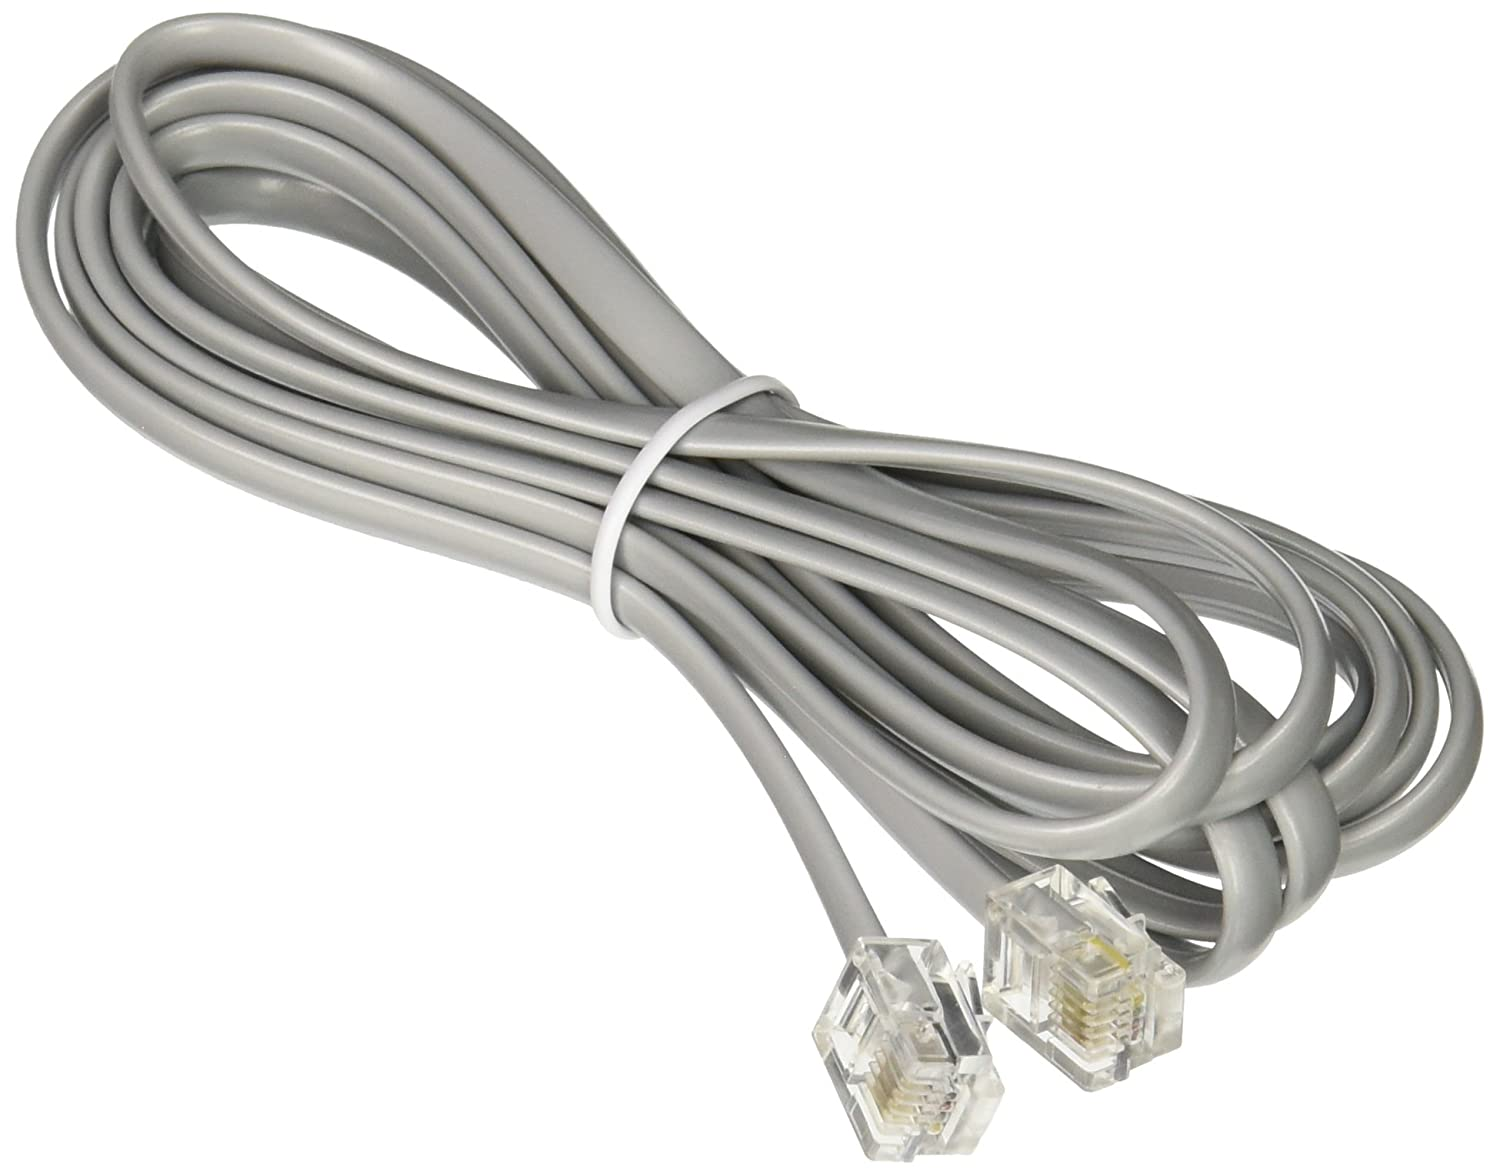 Amazon.com: Networx RJ11 6 Conductor Straight Wired Modular ...